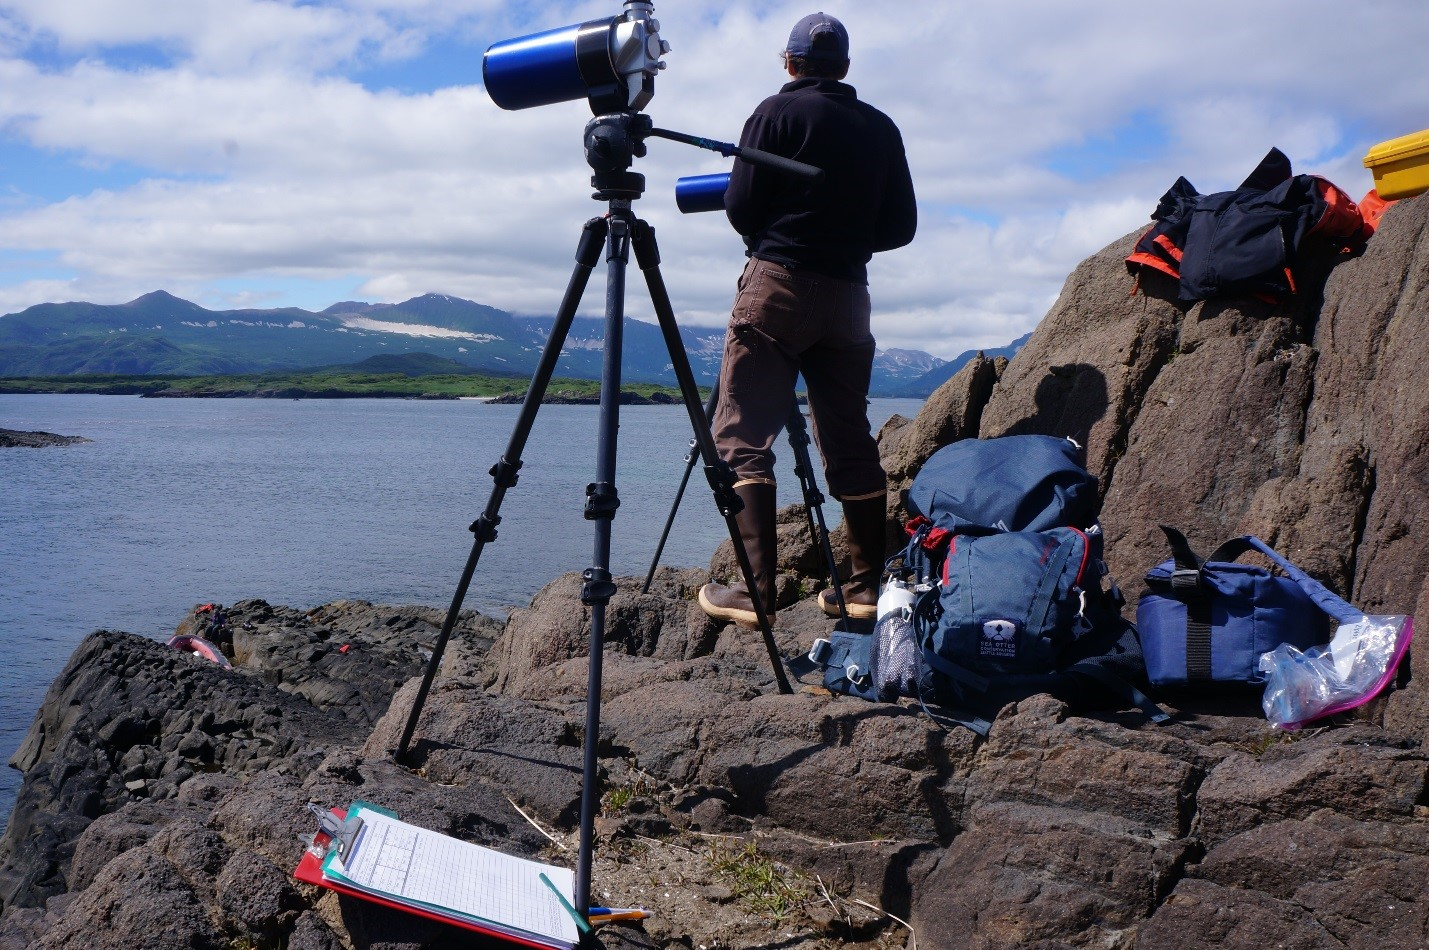 Part 1: Katmai sea otter research trip 2017